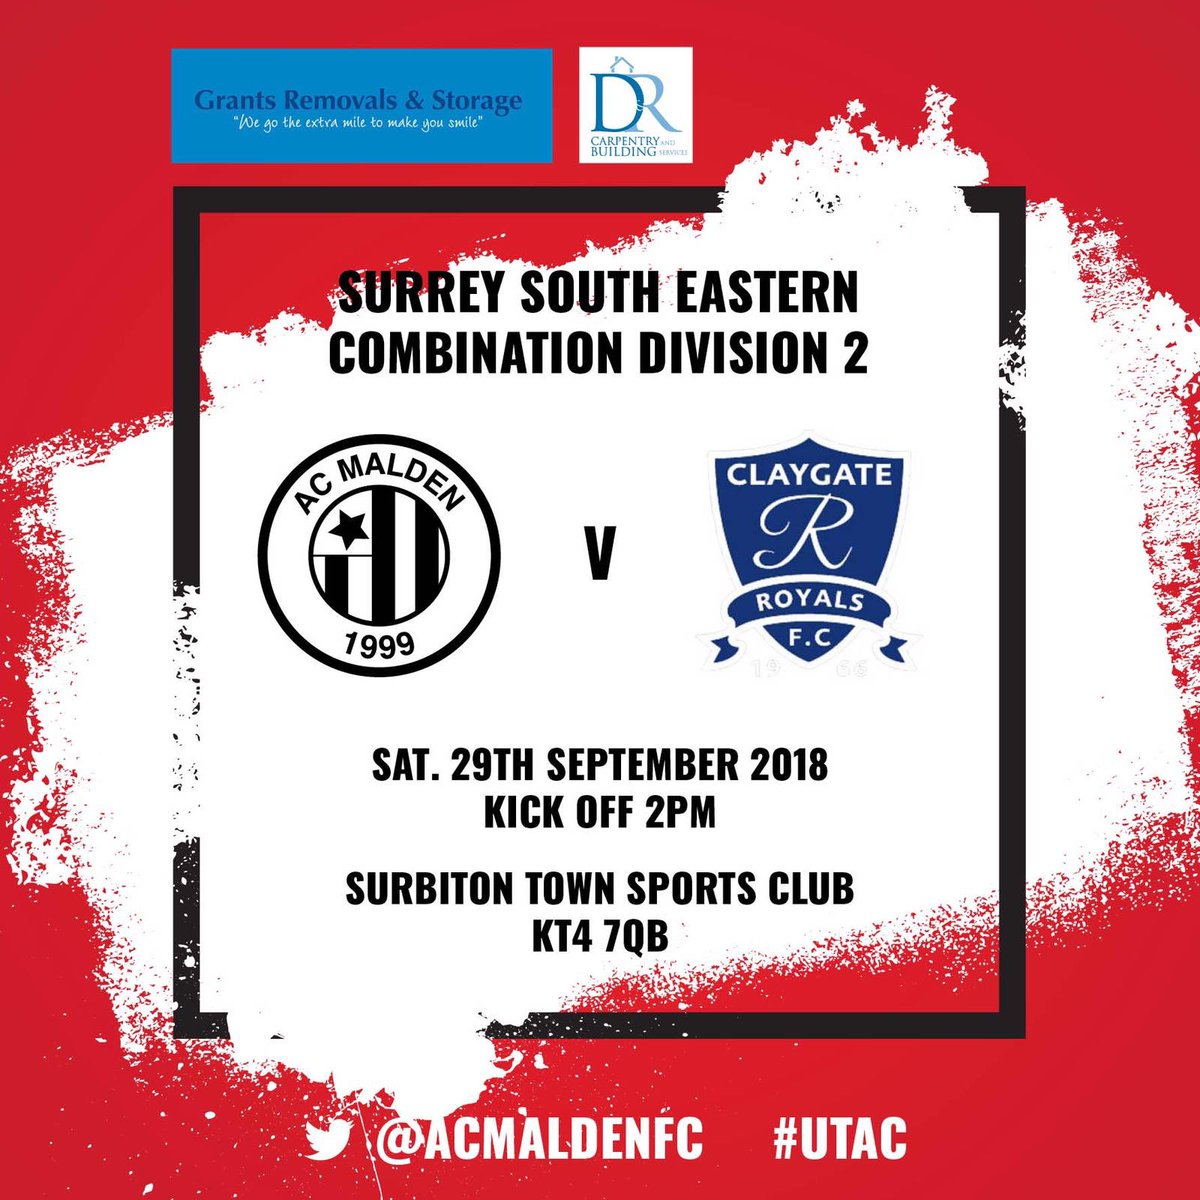 This week we aim to get back to winning ways against our good friends @ClaygateRoyals1  2PM KO at home #UTAC 🔴⚫️🔴⚫️🔴